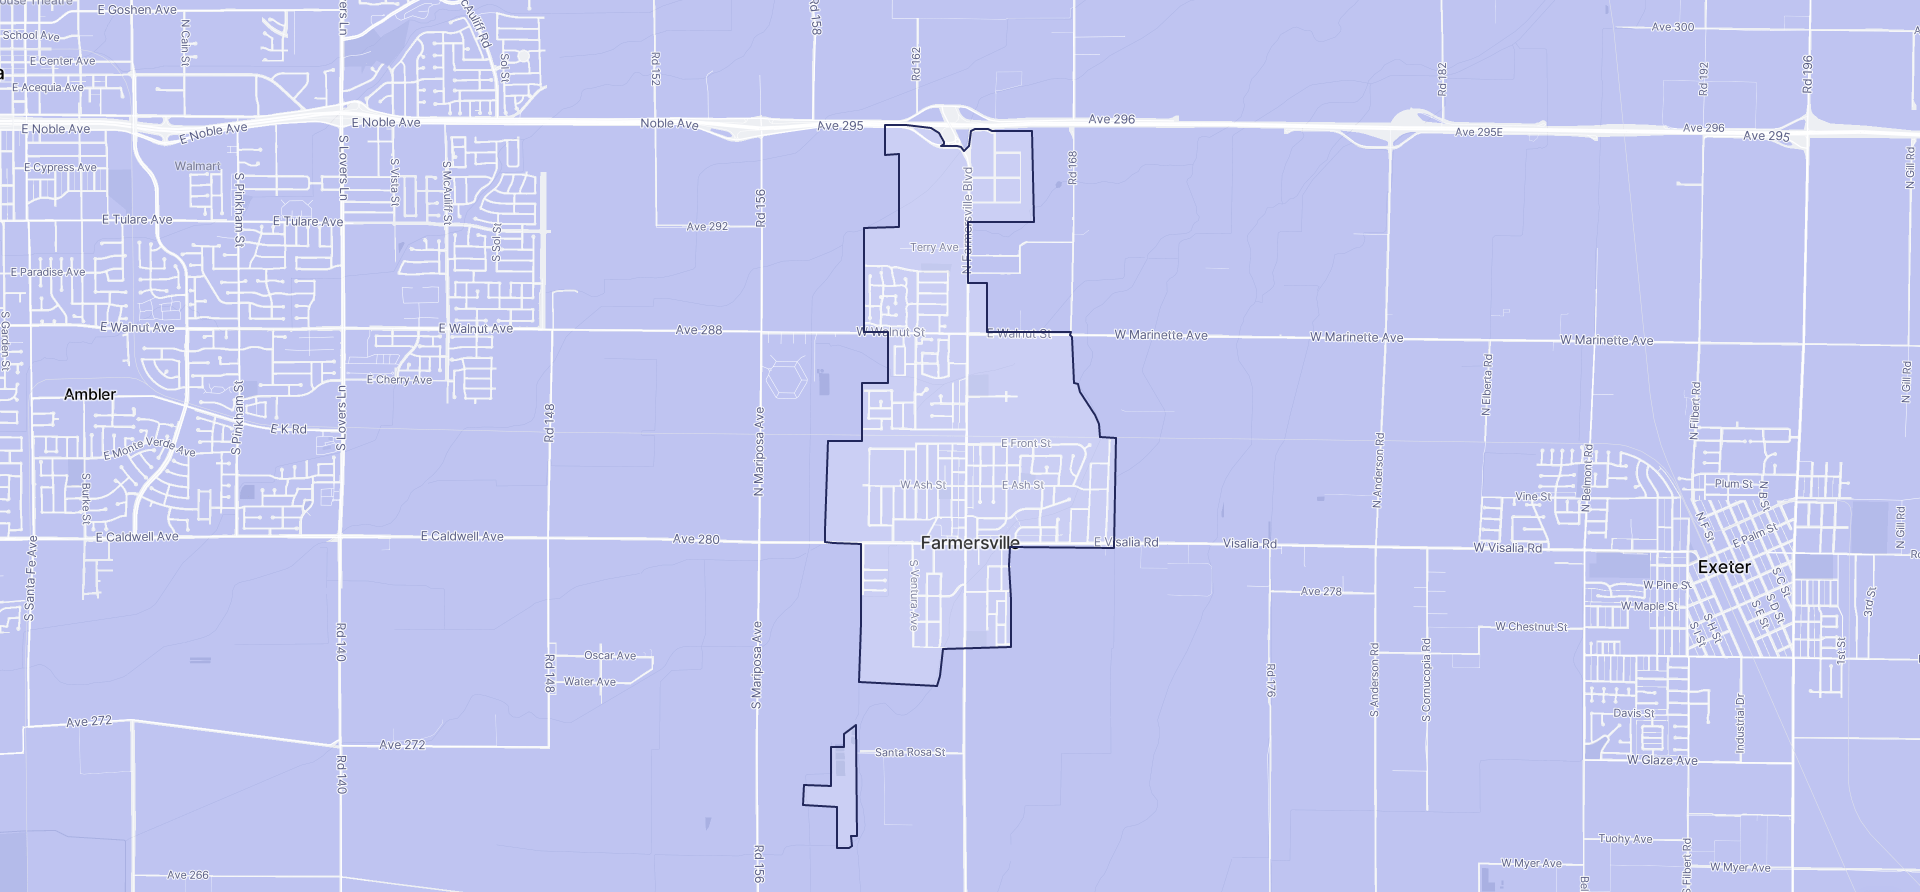 Image of Farmersville boundaries on a map.